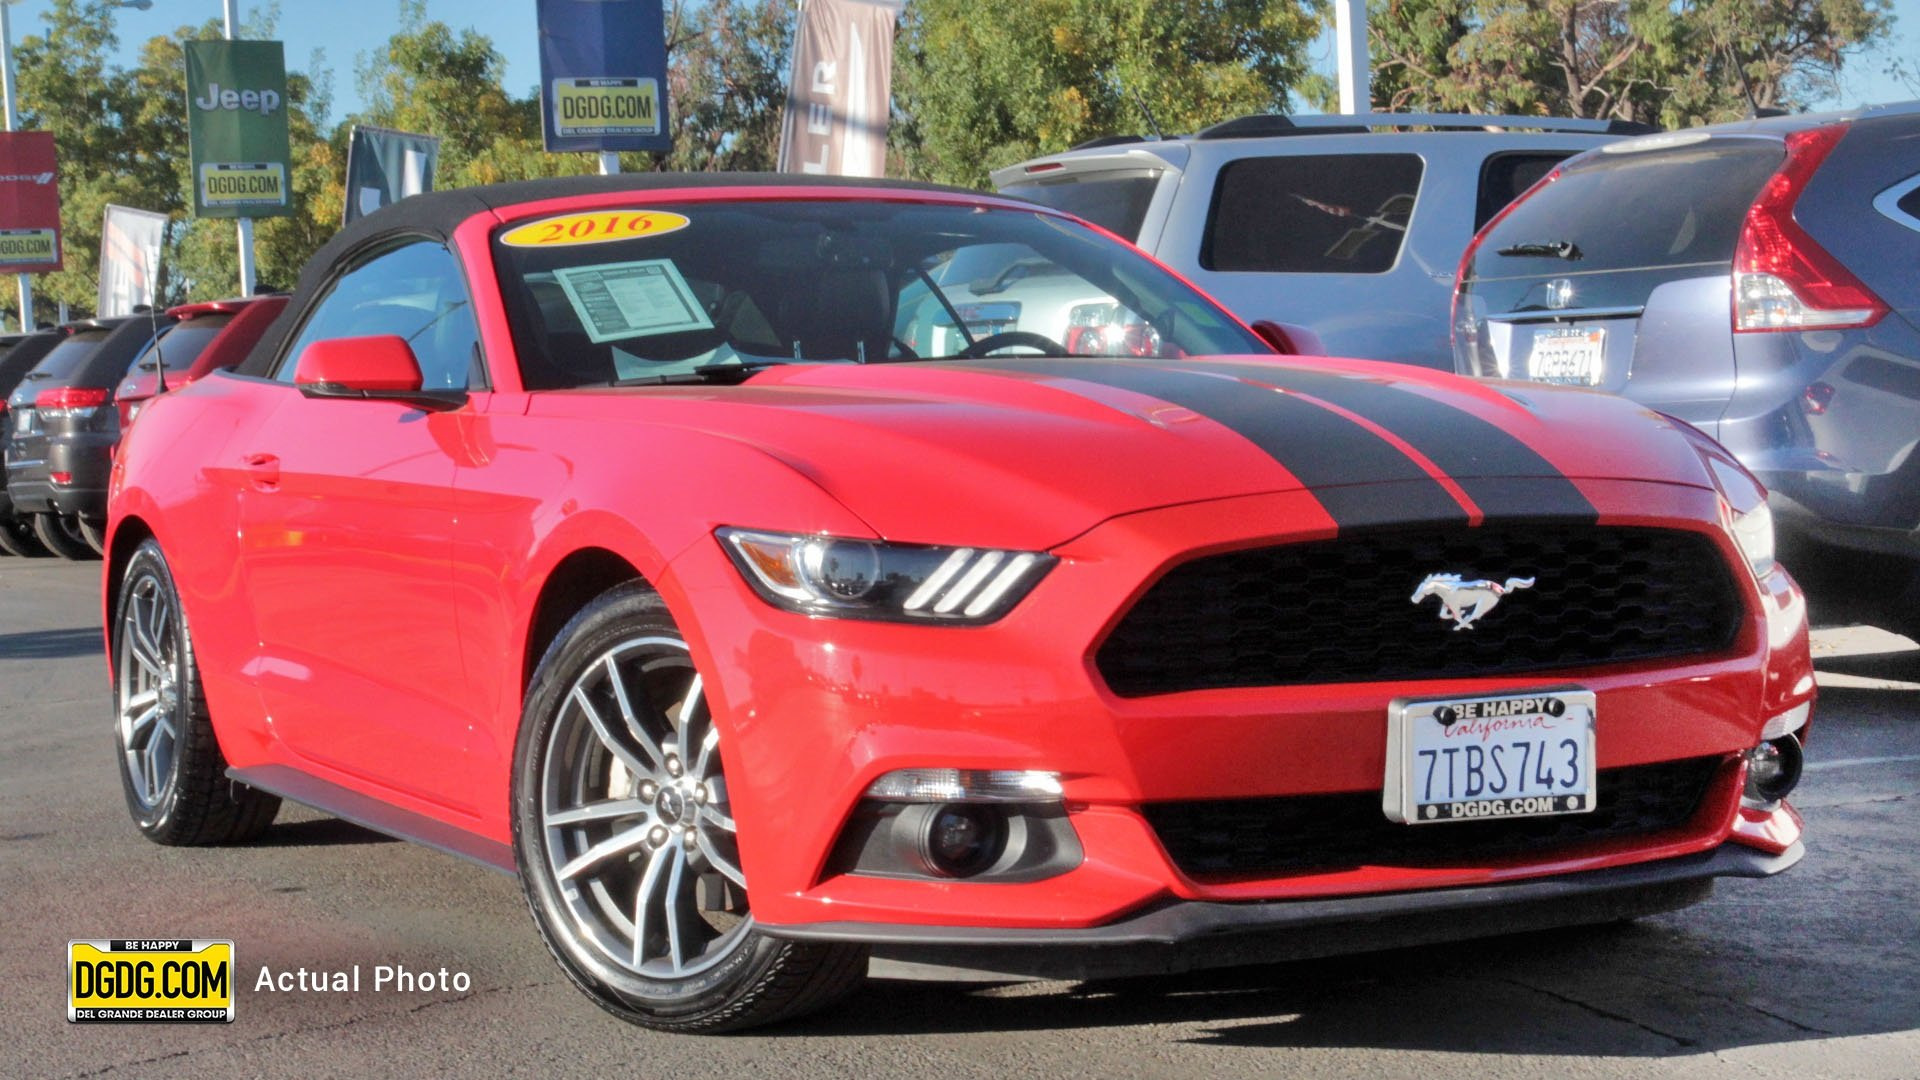 Mustang EcoBoost Premium 2D Convertible in Fremont Chrysler Dodge